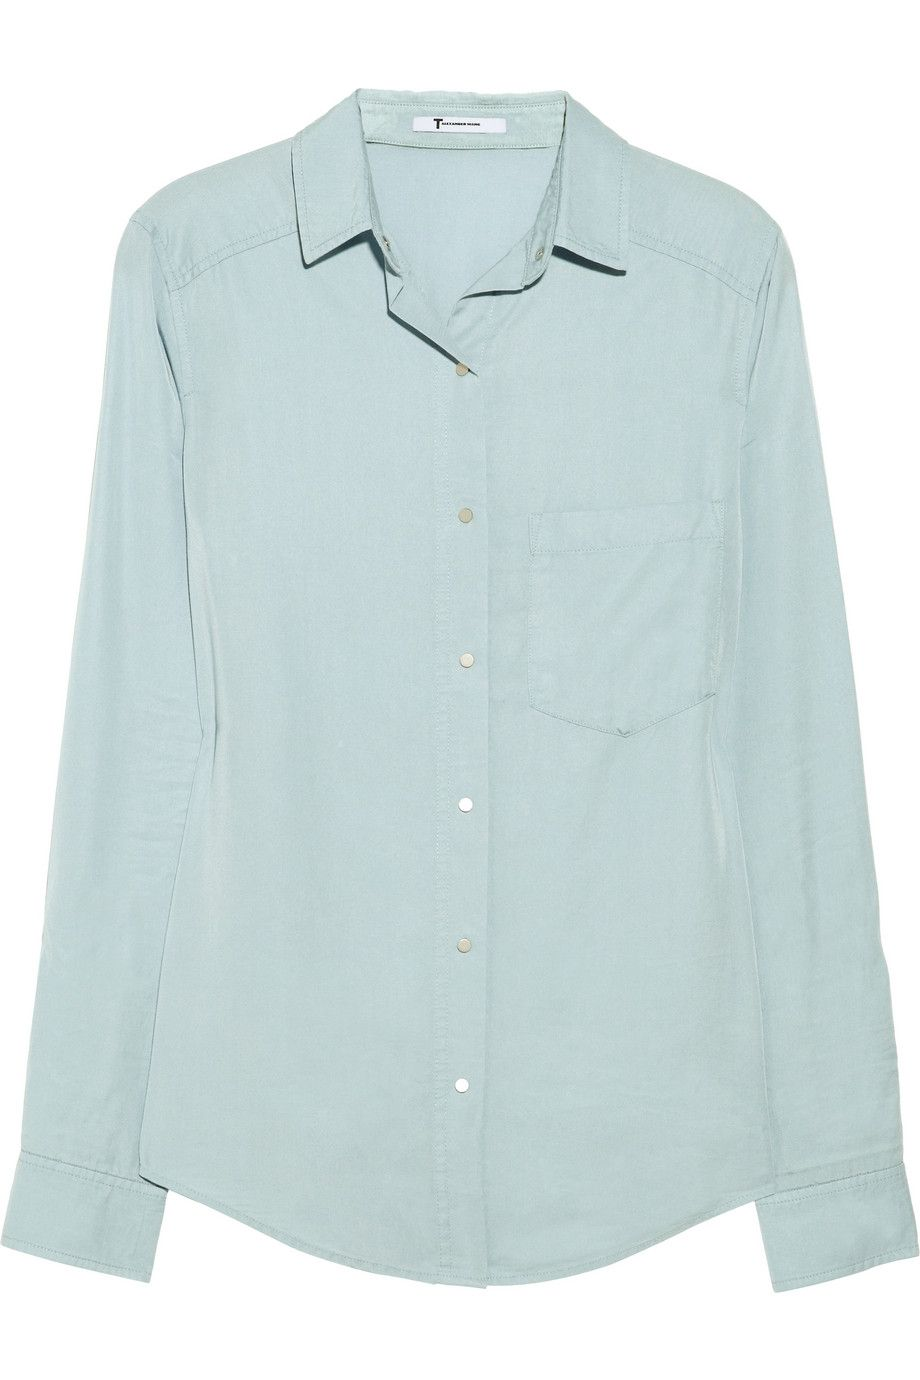 T by Alexander Wang Washed-twill Shirt